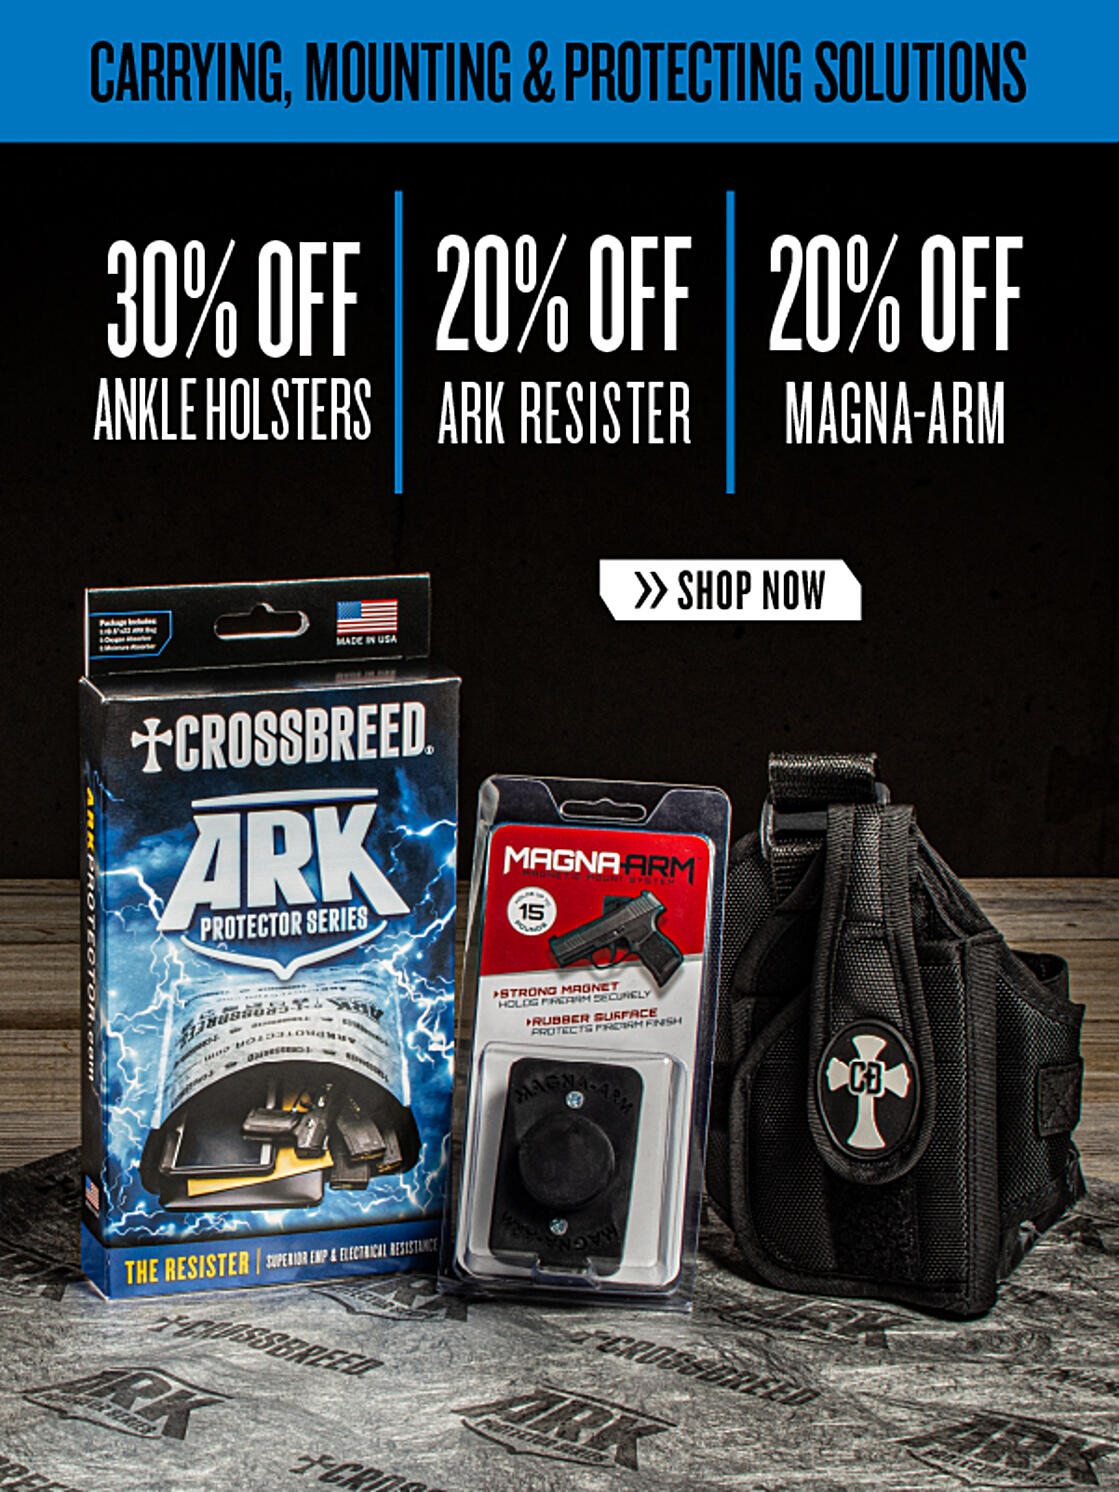 30-off-ankle-holsters-20-off-ark-bags-magna-arm